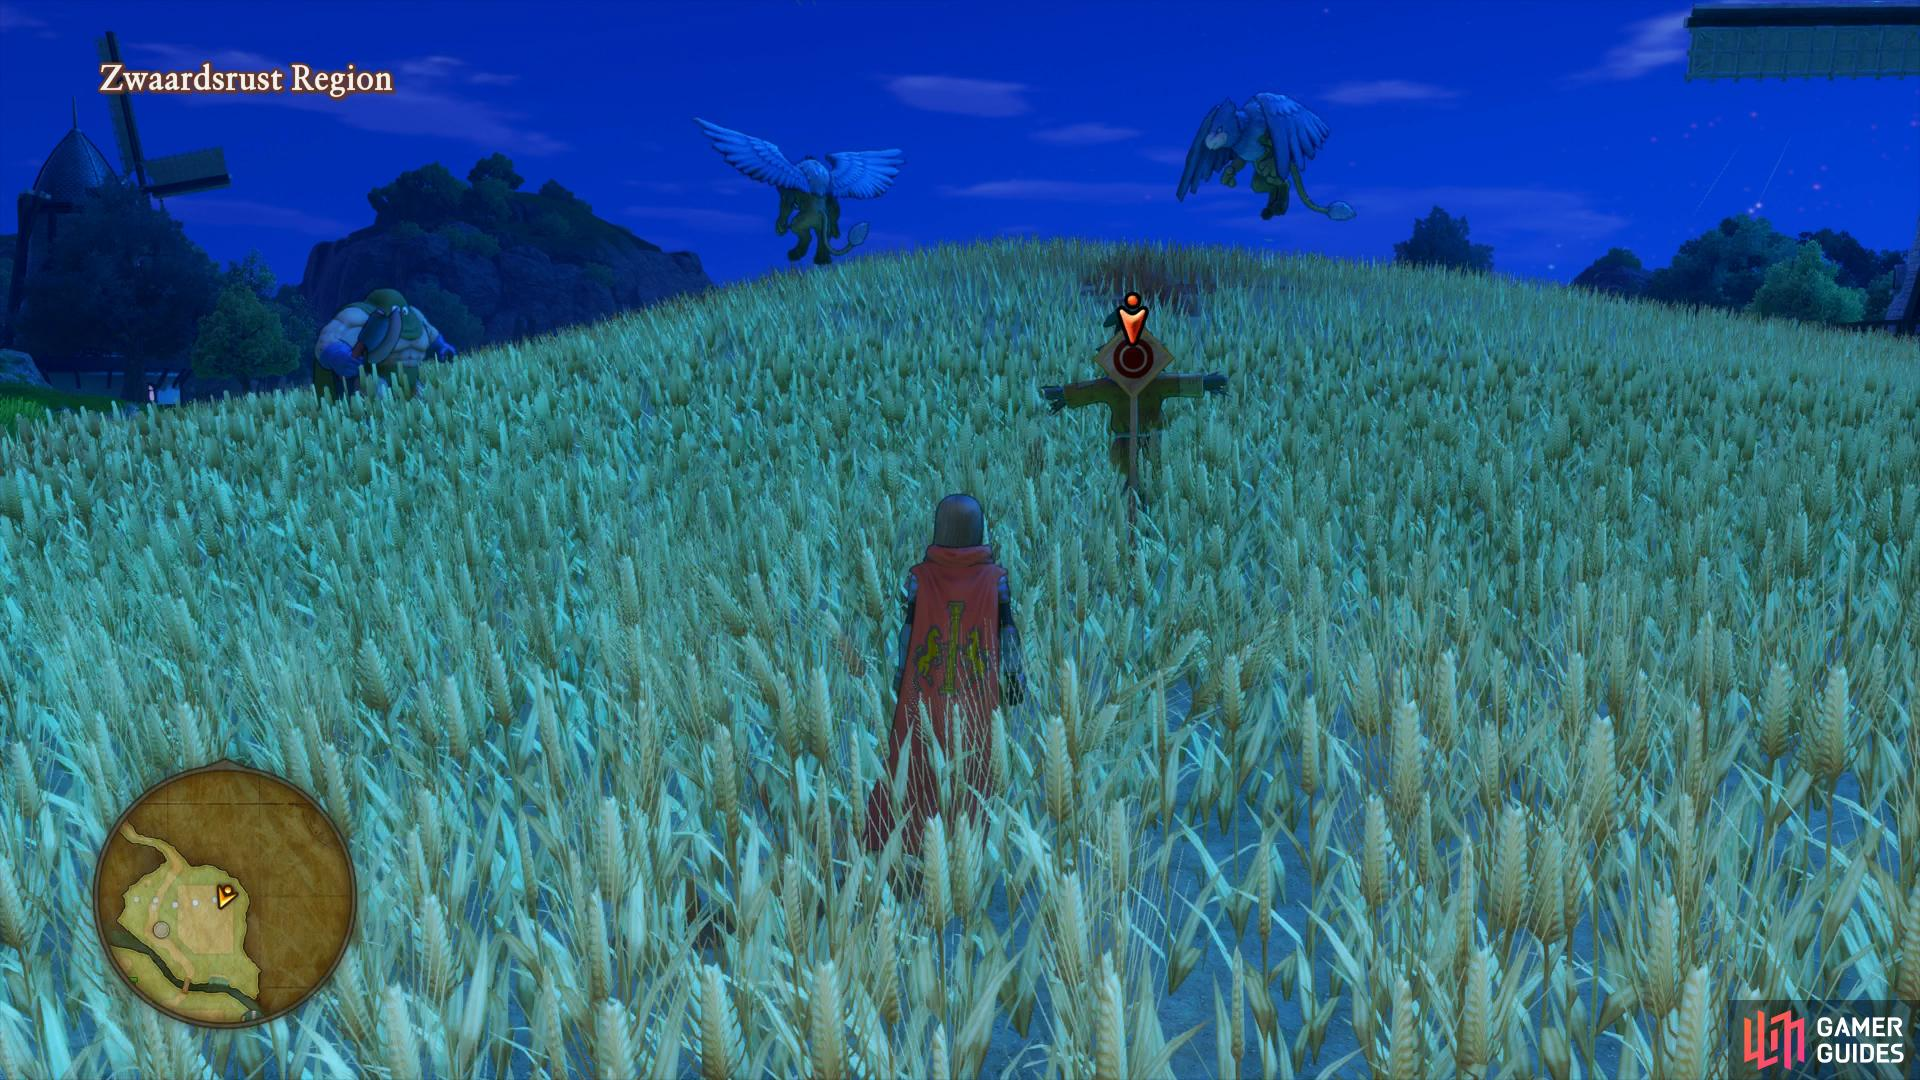 before striking the final target on the back of a scarecrow in the nearby field.